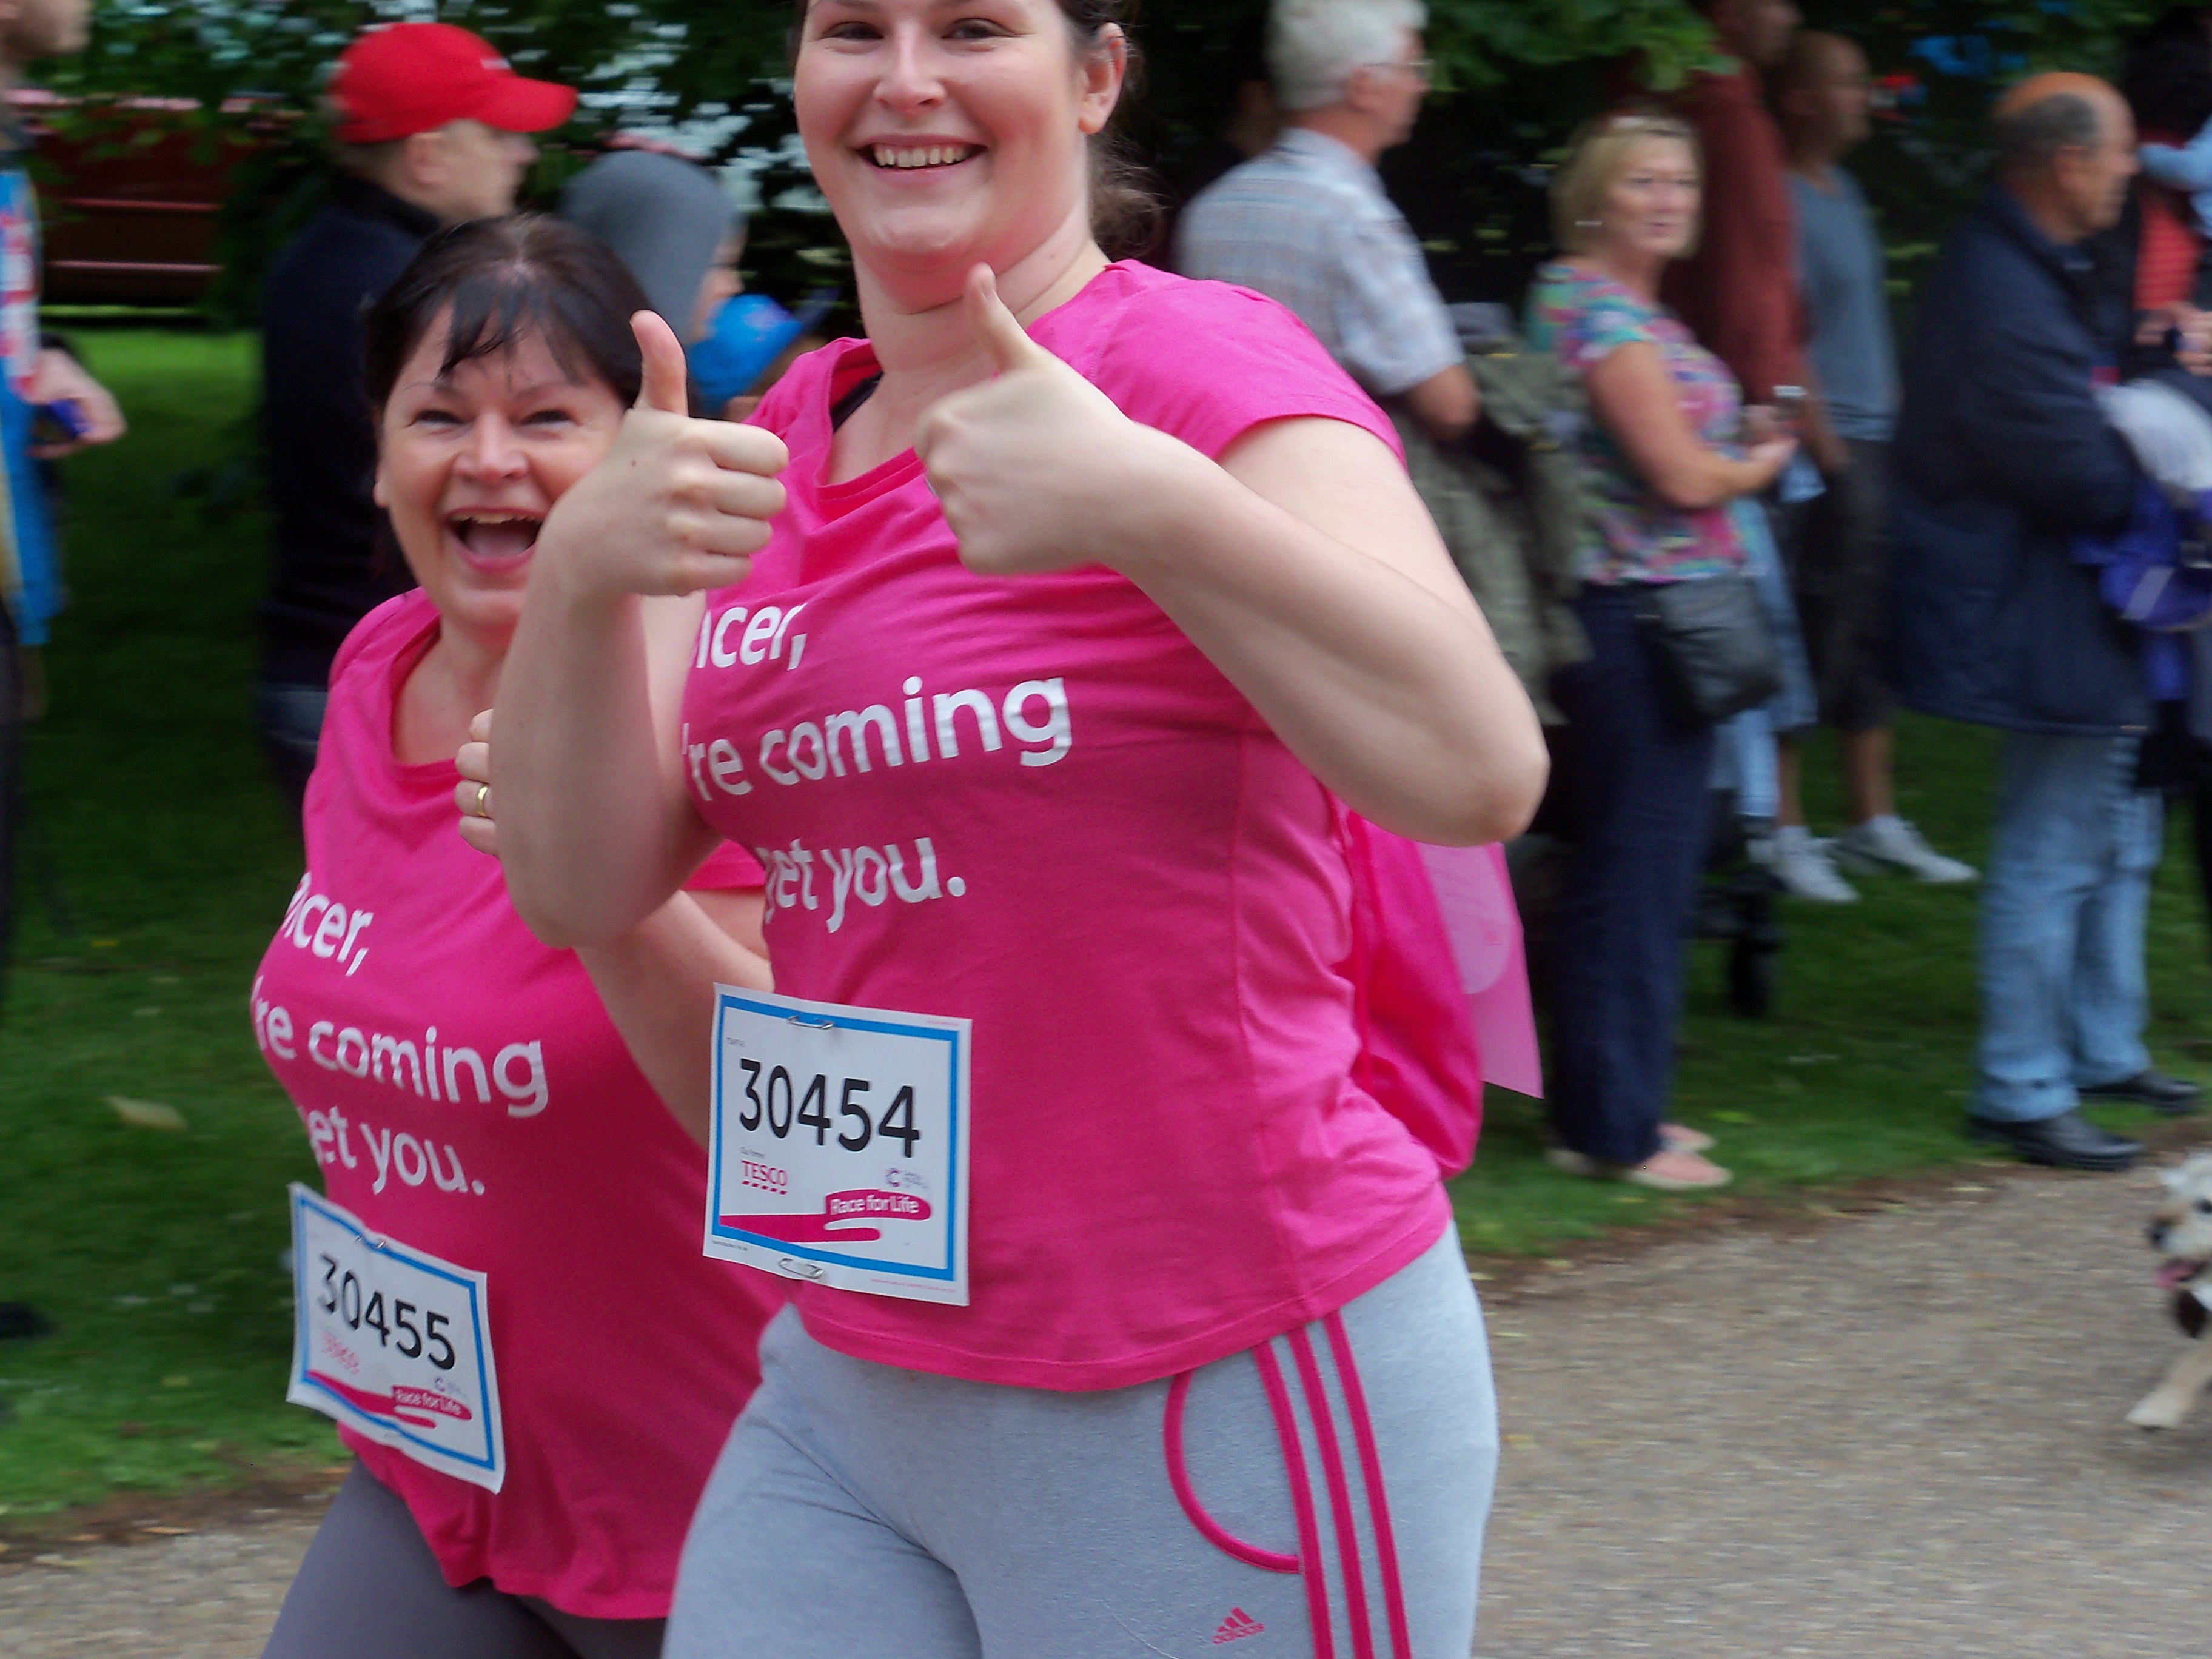 Sherryl Etches completing the Race for Life at Clumber Park on Saturday, 22 June, 2013.